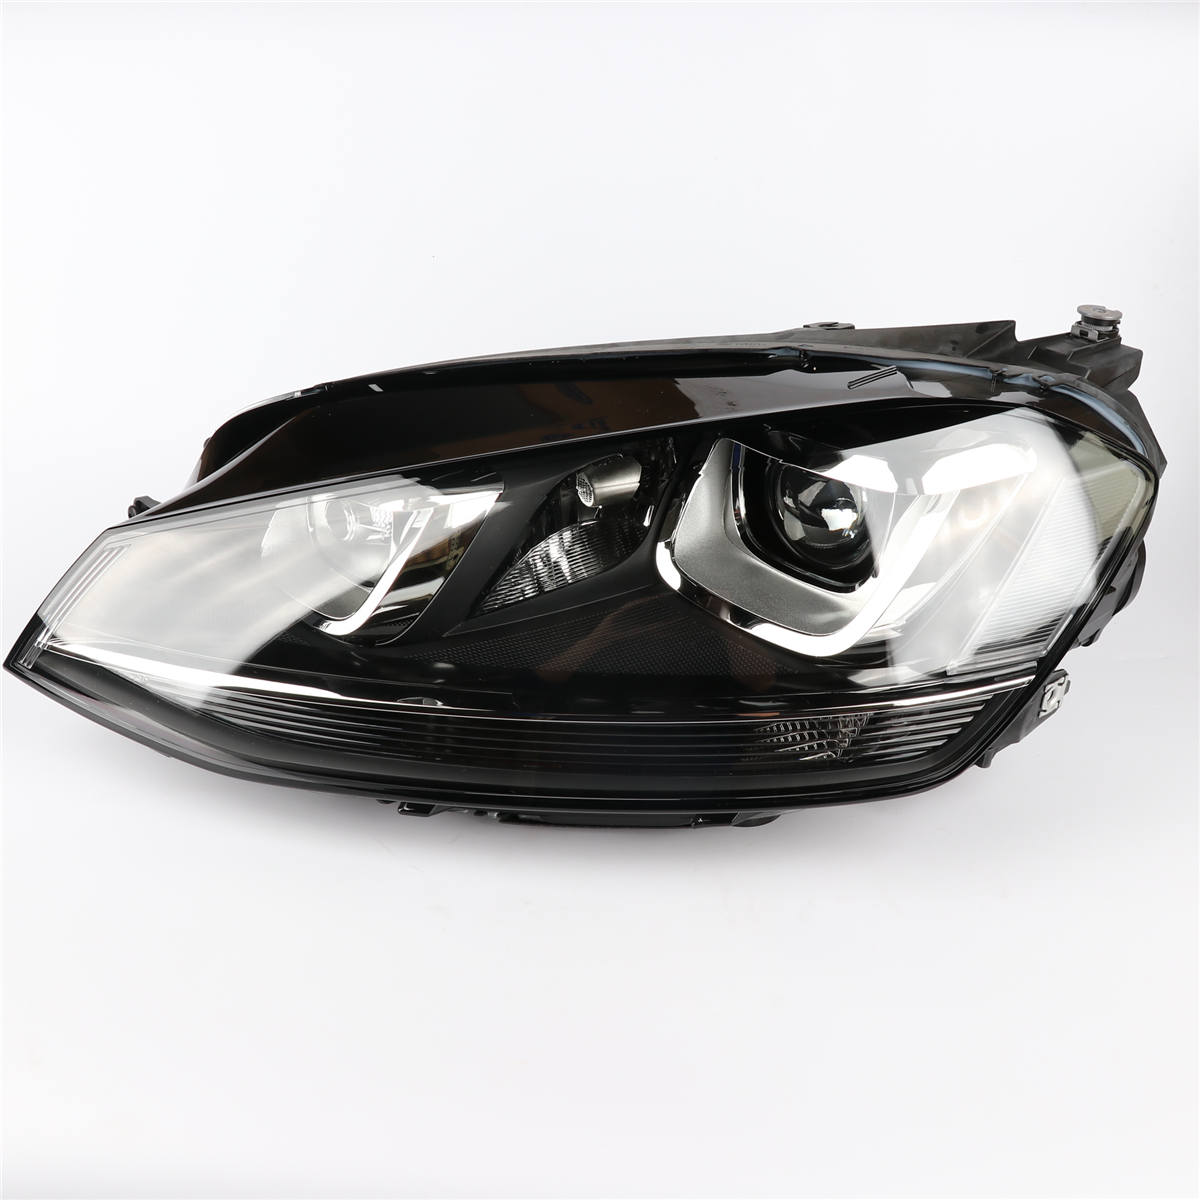 1Pcs Genuine Front Headlight Head Light Lamp Assembly Right Side For VW Golf MK7 L5GG 941 032 right combination headlight assembly for lifan s4121200